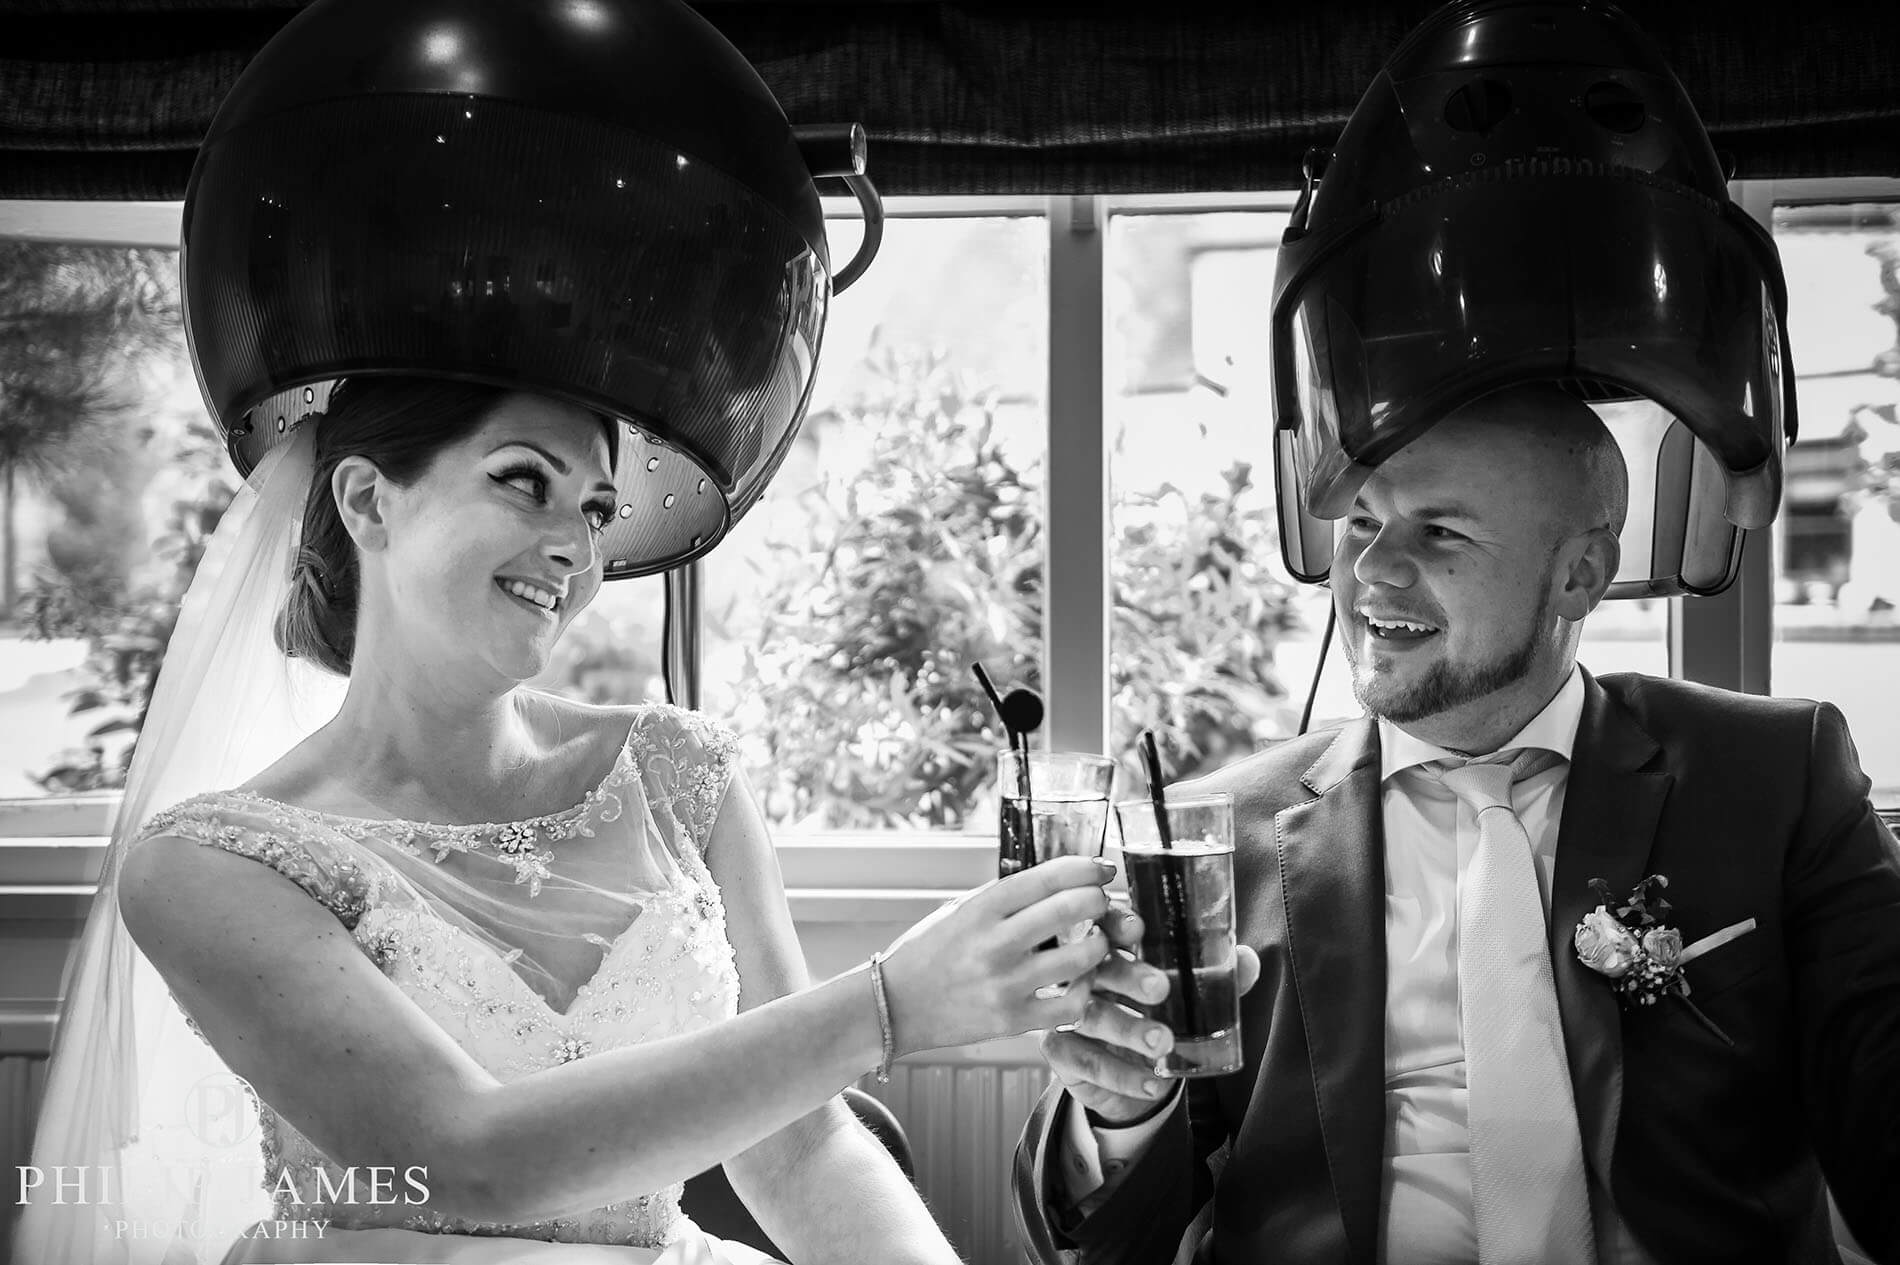 Philip James specializing in Wedding Photography Birmingham - Moments (30 of 170)